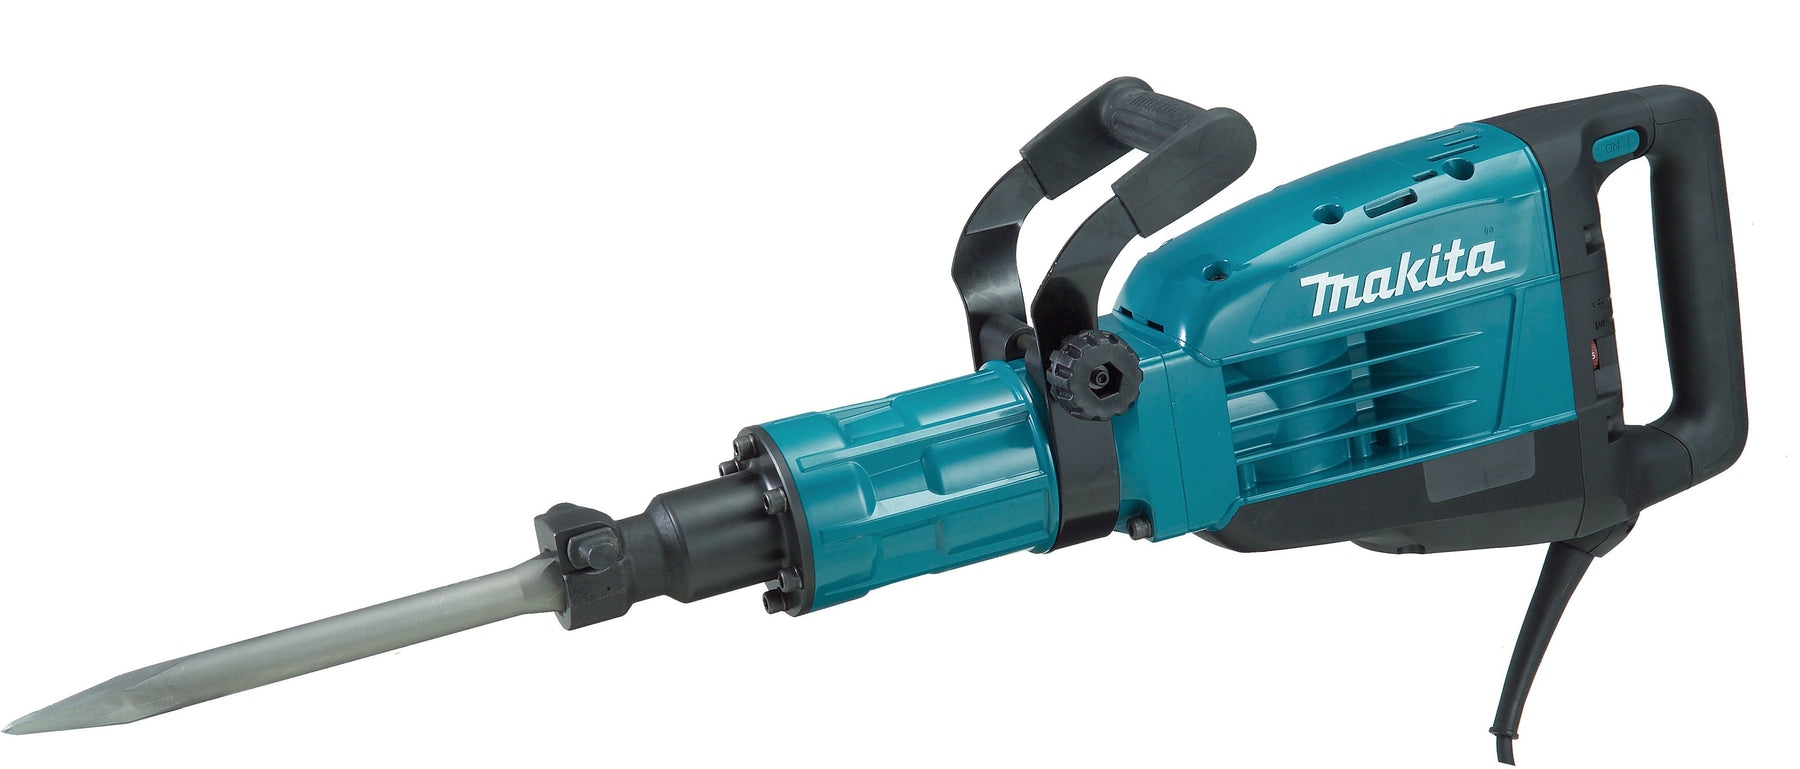 Makita Electric Breaker HM1307C(1510WATT)